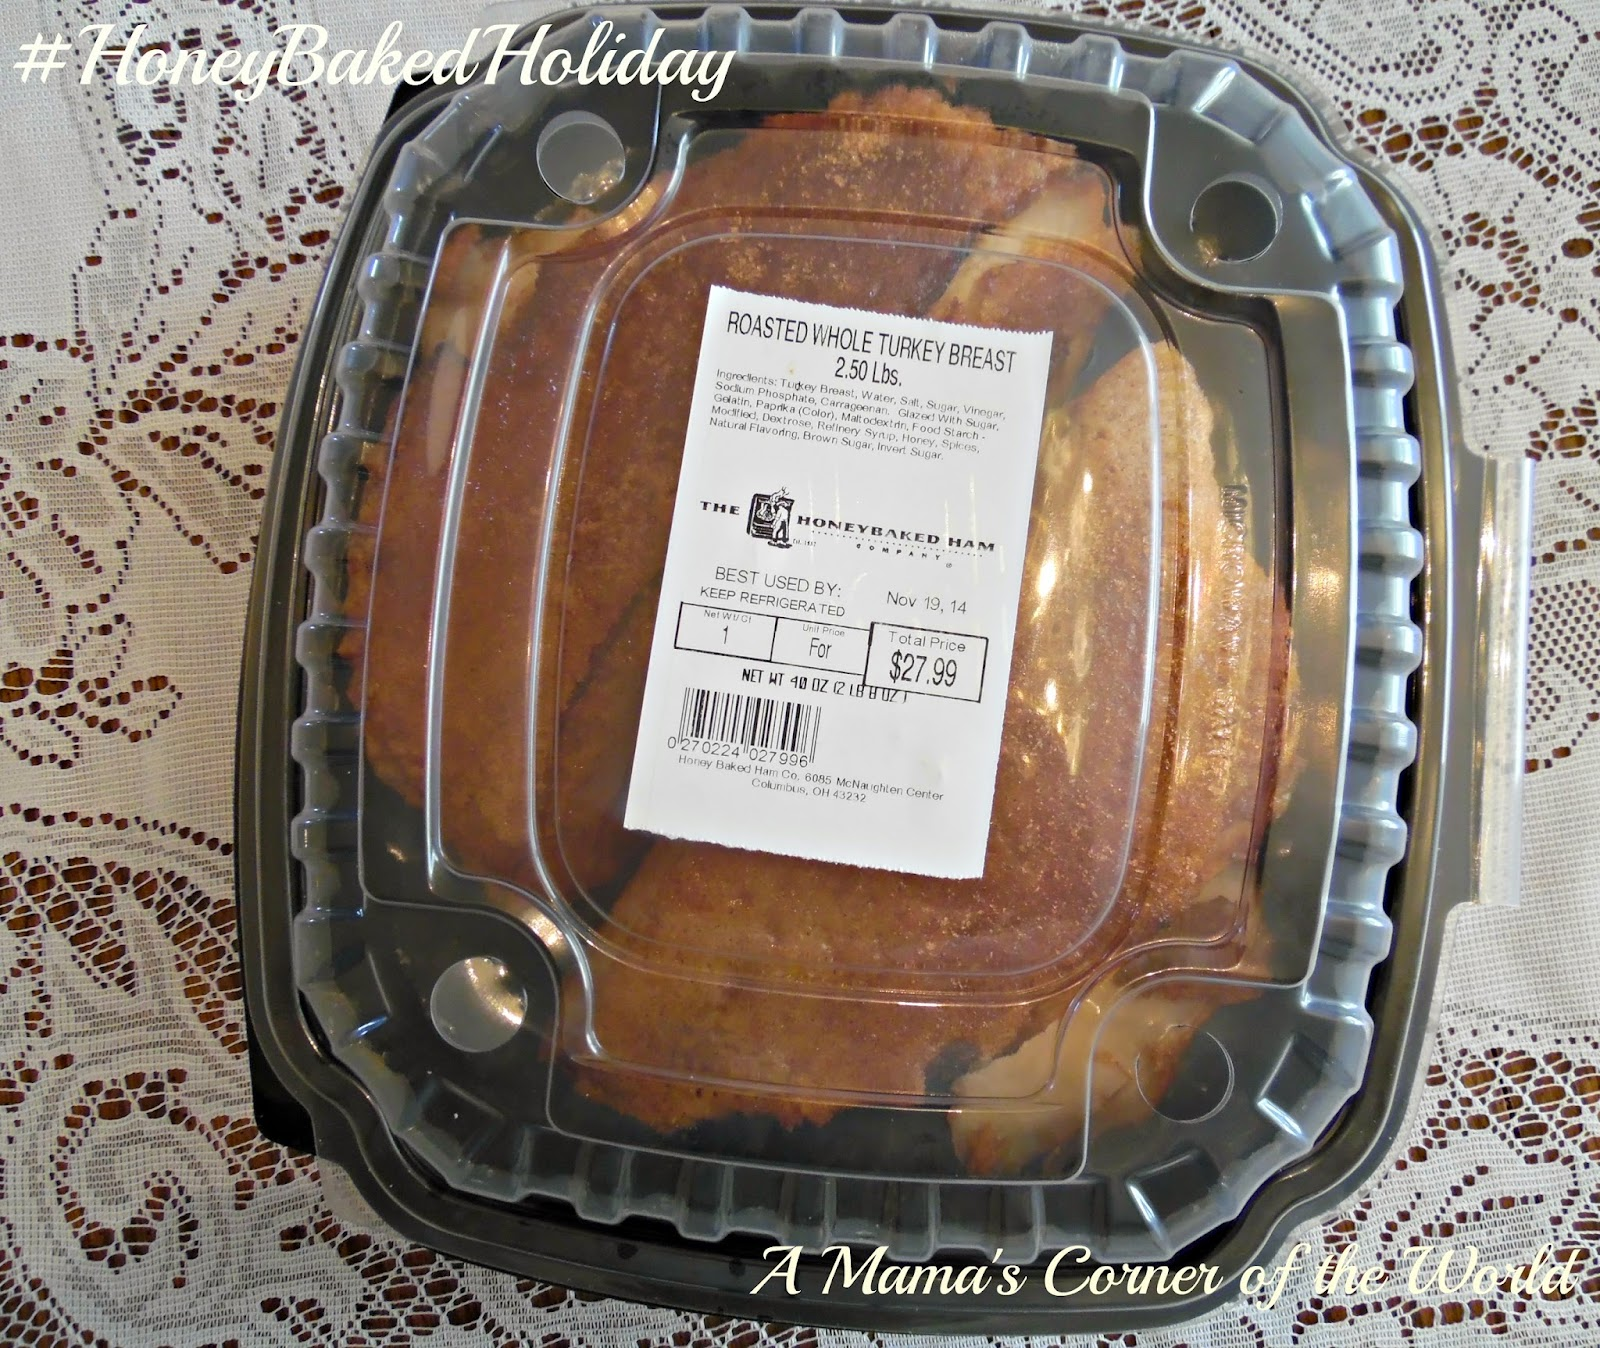 A Honeybakedholiday Dinner For Thanksgiving A Giveaway A Mamas